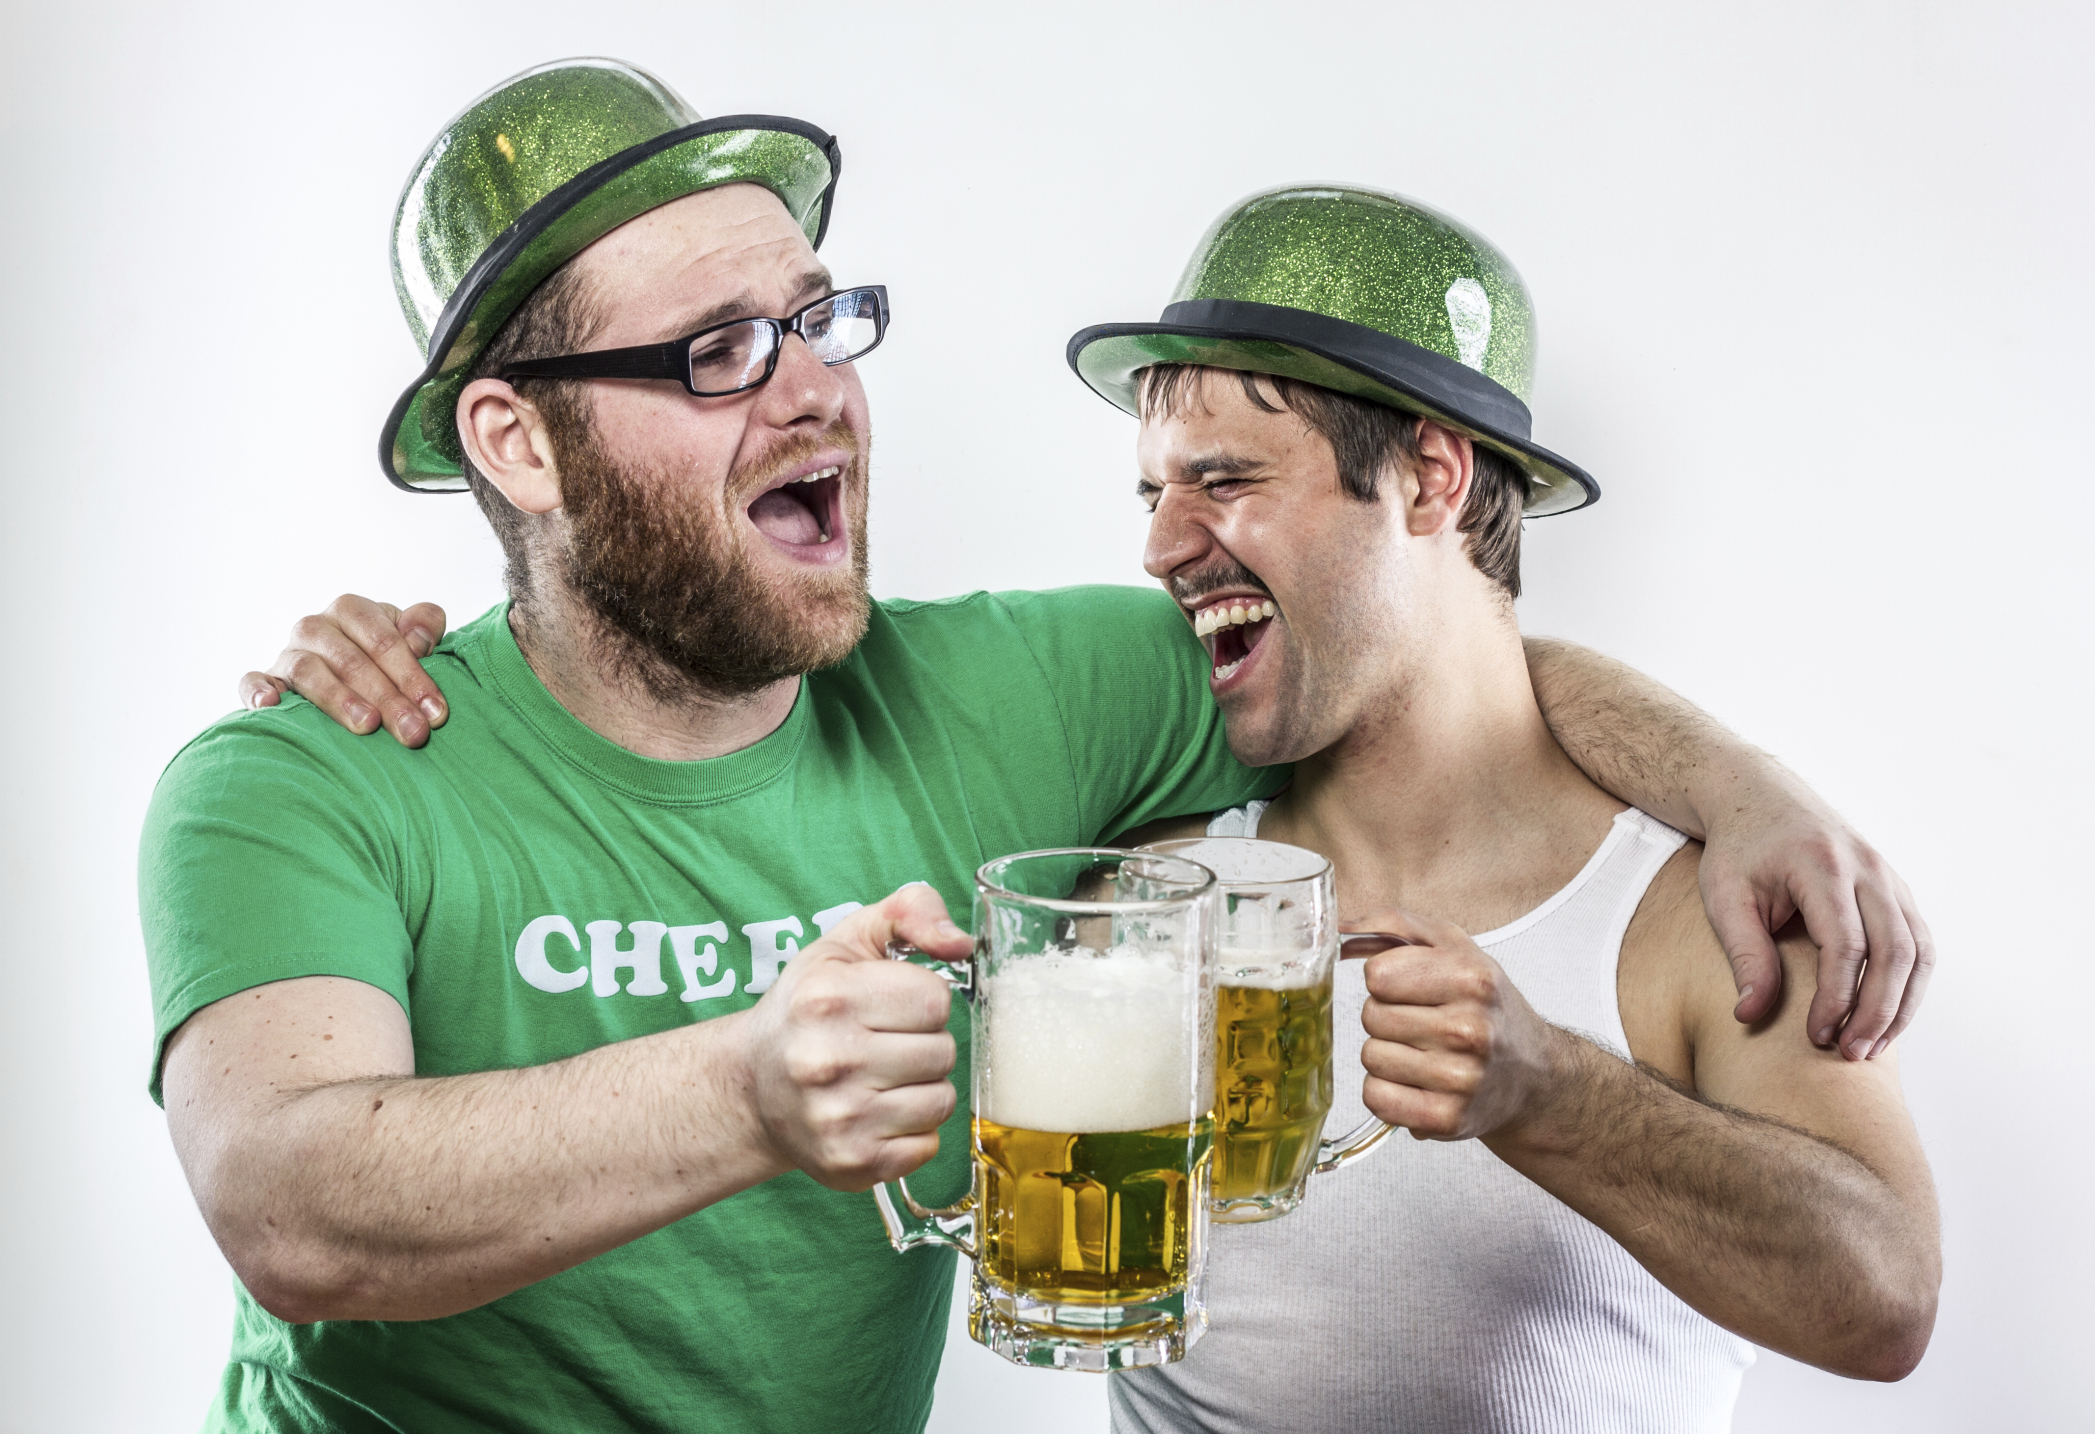 the drunk irishman stereotype At one point there was a wine tax in ireland because so much of it was drunk in the 19th century many irish immigrated to the usa and the americans stereotyped them as drunks i think it is a horrible stereotype, i think the irish are great people.